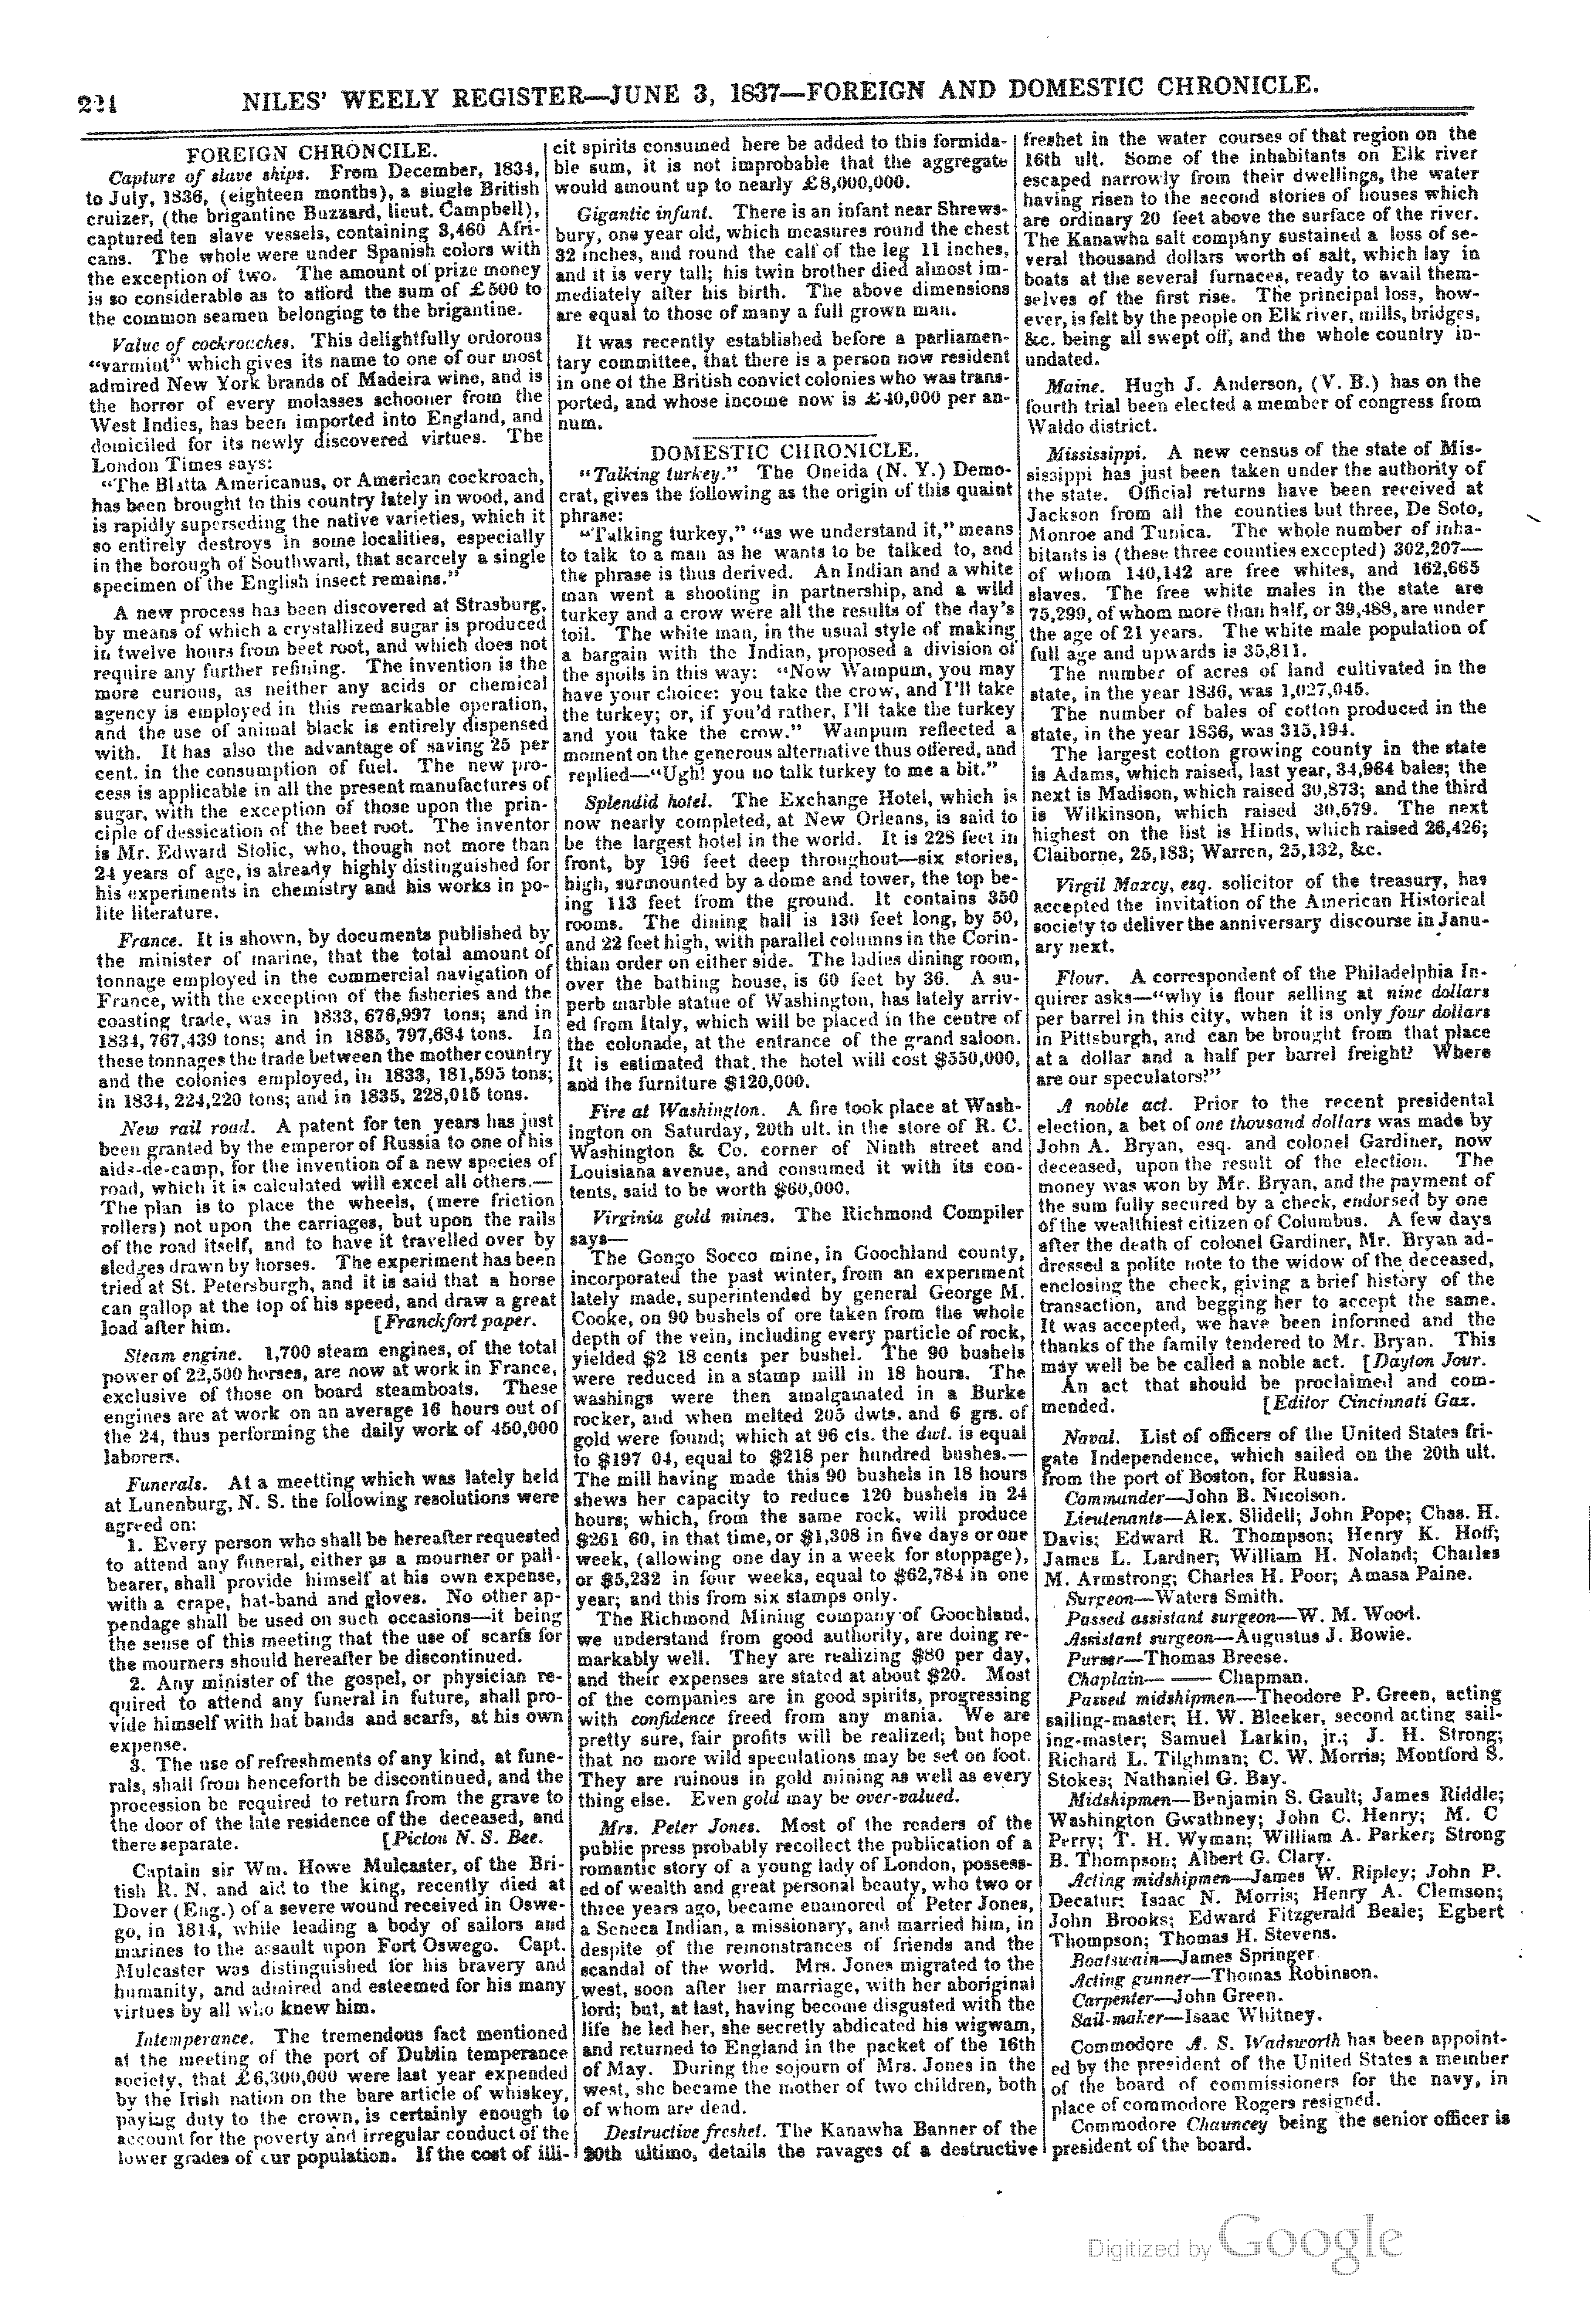 June 3, 1837 page 240